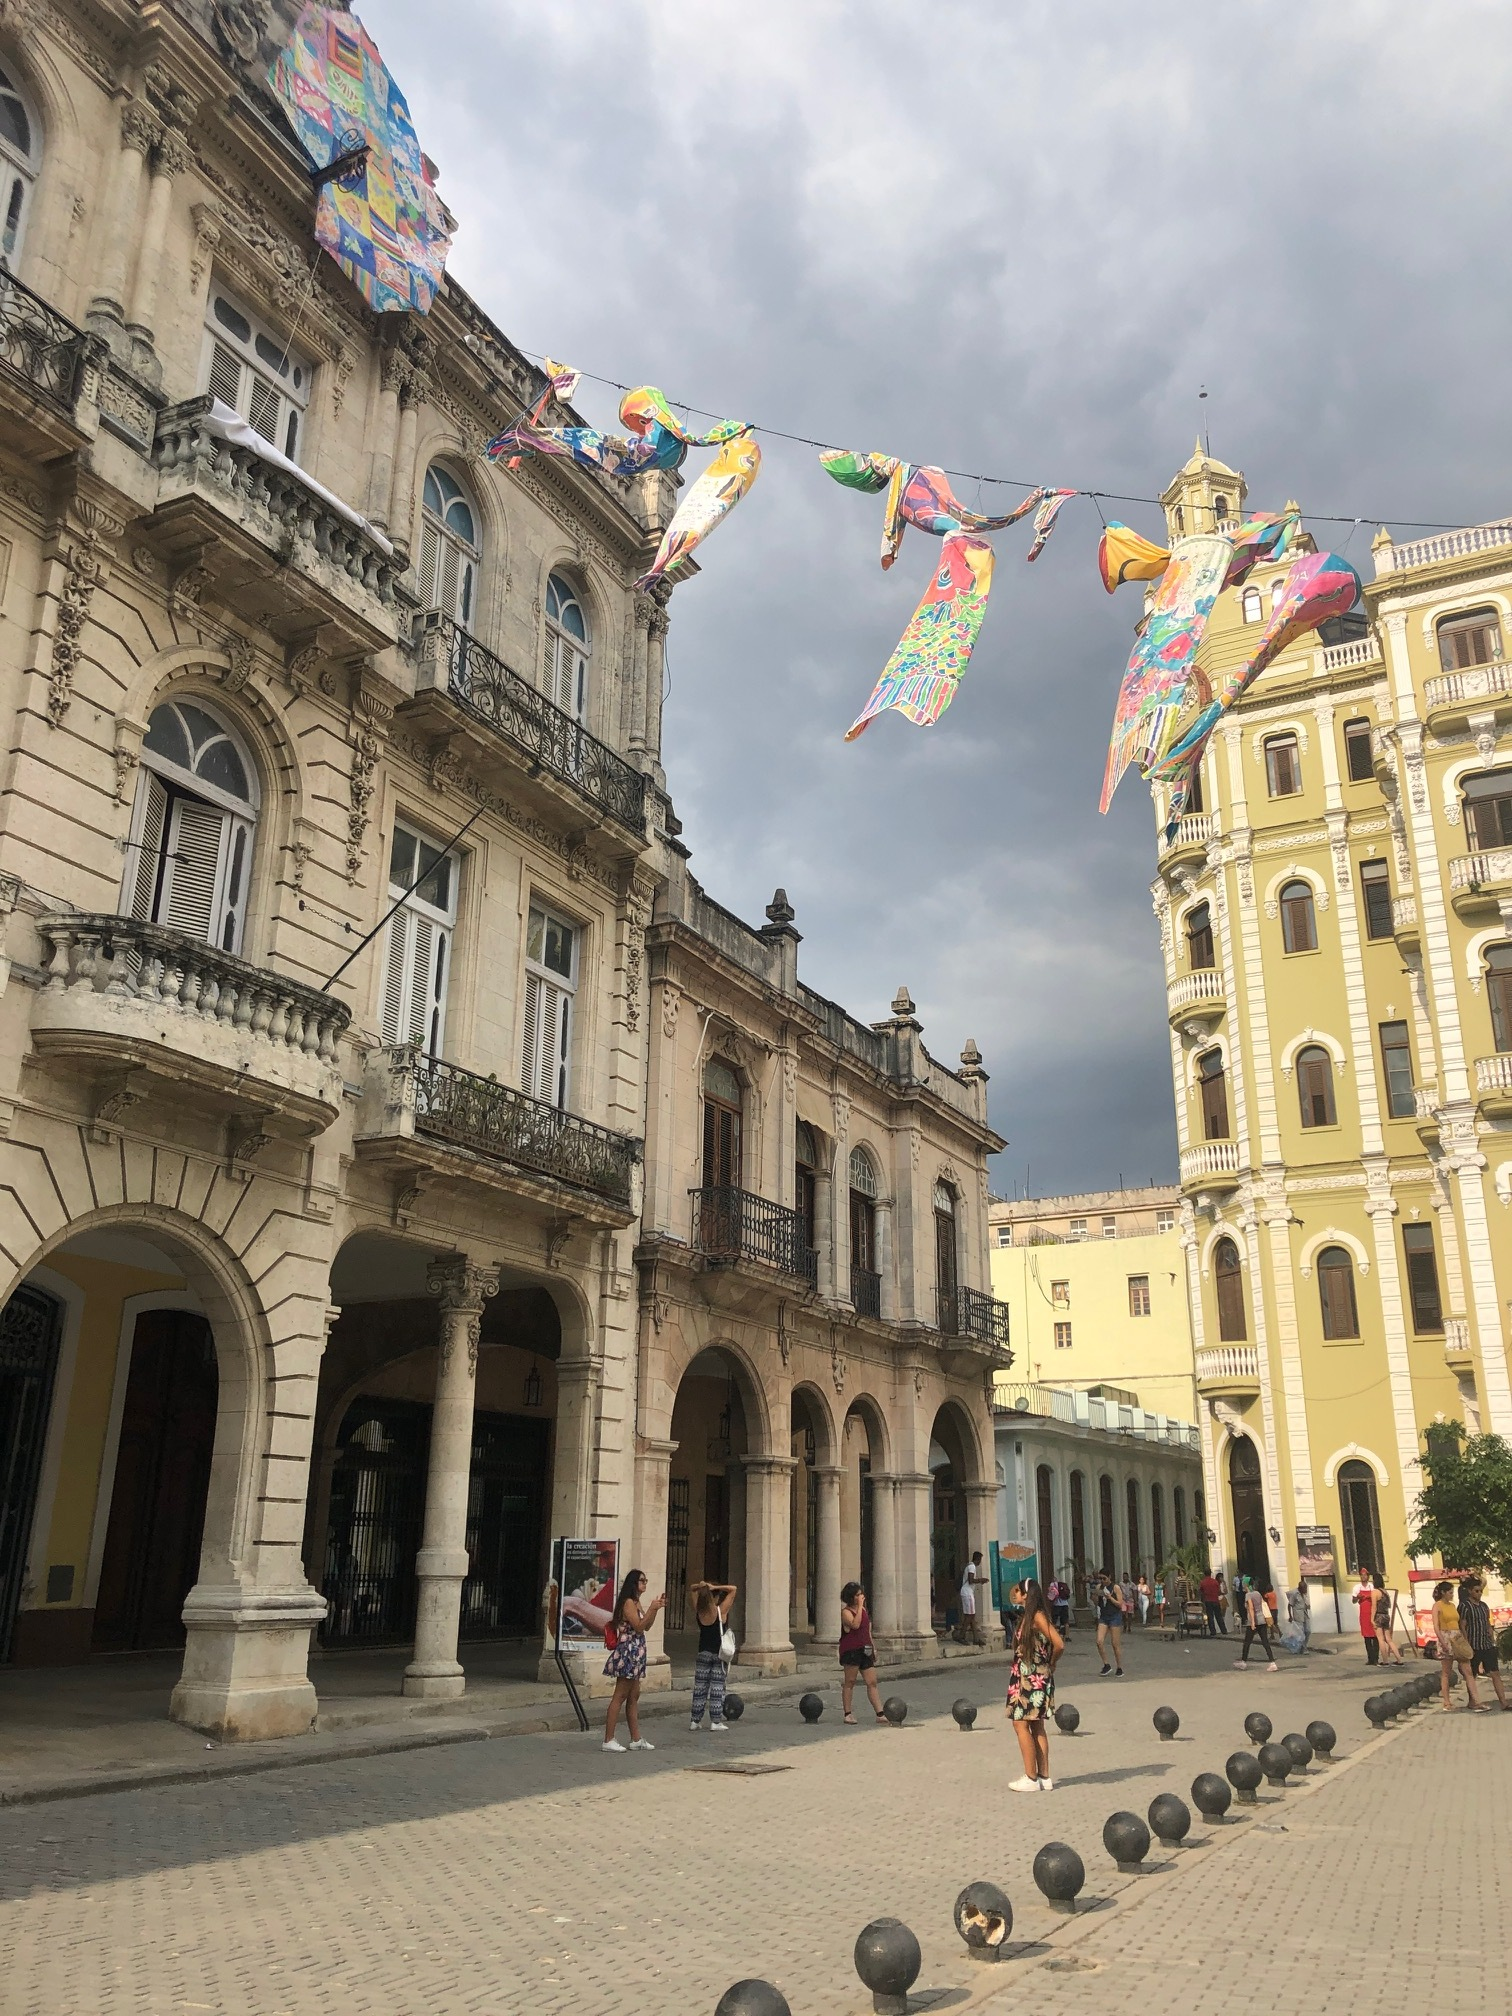 Spanish colonists built Plaza Vieja in 1559. During the Batista regime in the early 1950s it was turned into a parking lot. In the 1980s, when Old Havana was listed by UNESCO as a Cultural Heritage site, architects  began work to restore the Plaza Vieja to its original condition.